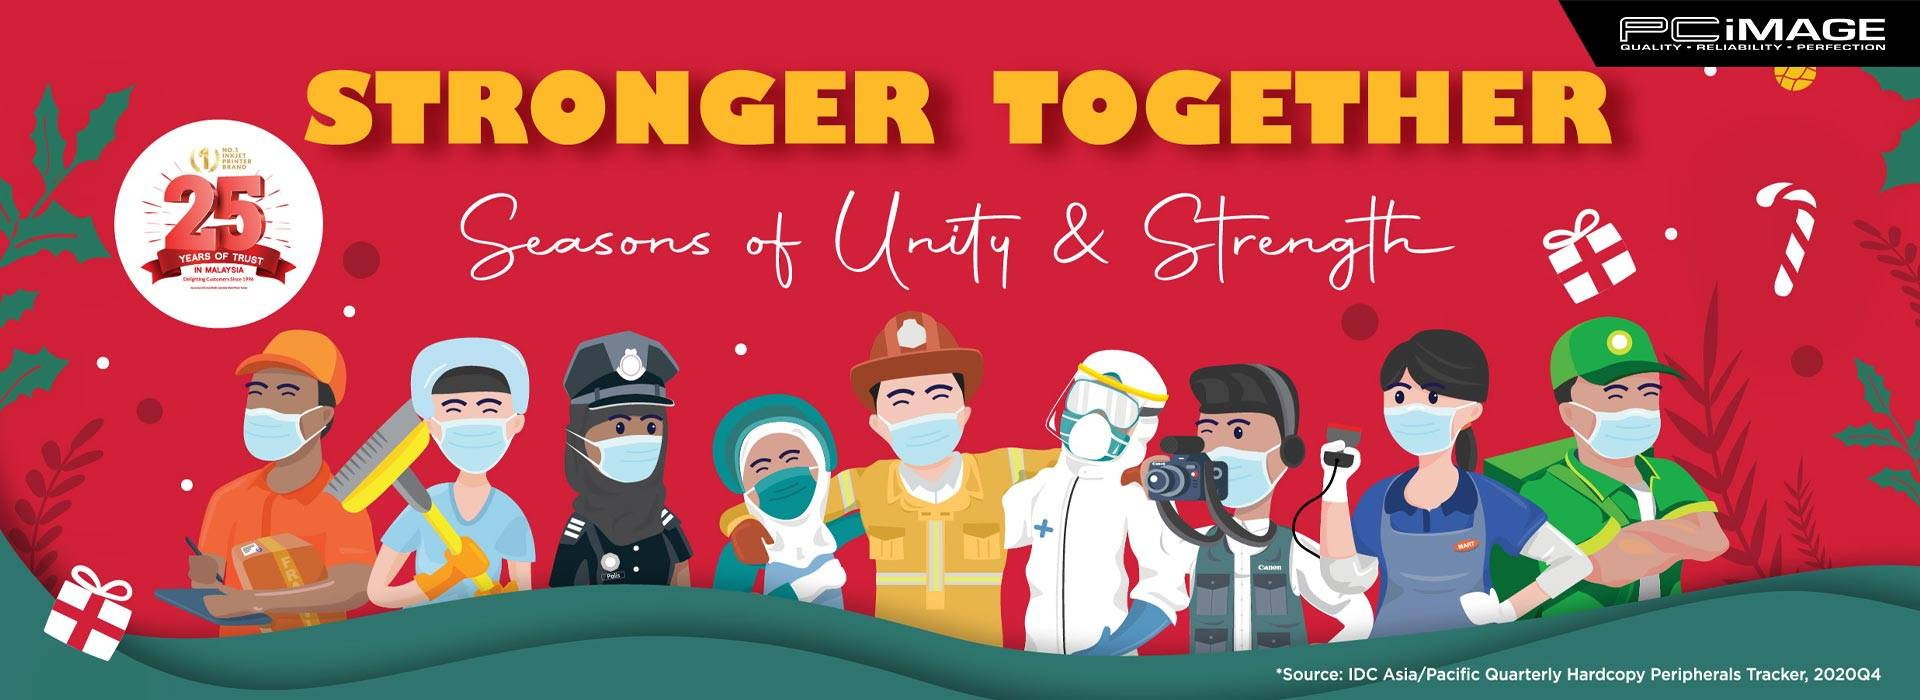 Canon Stronger Together